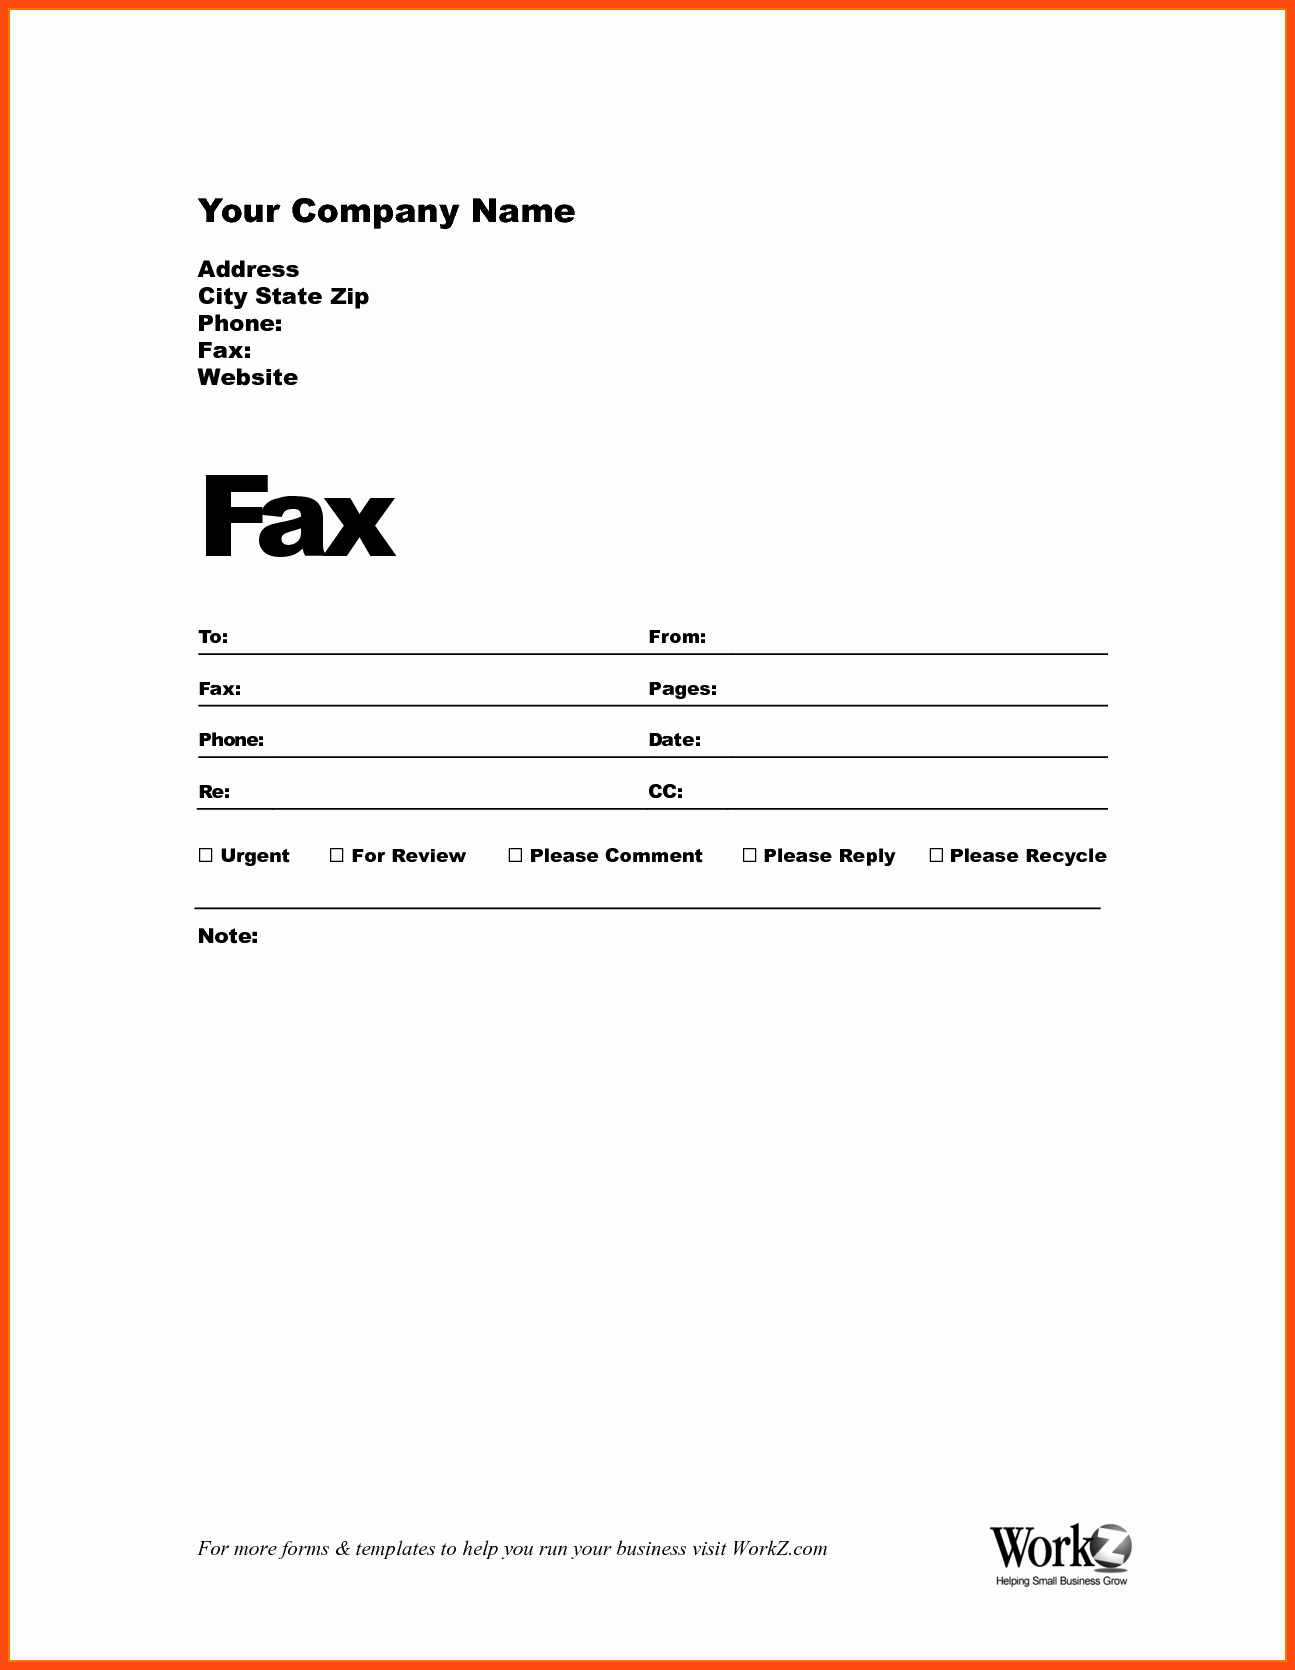 Free Fax Cover Page Template Unique How to Fill Out A Fax Cover Sheet